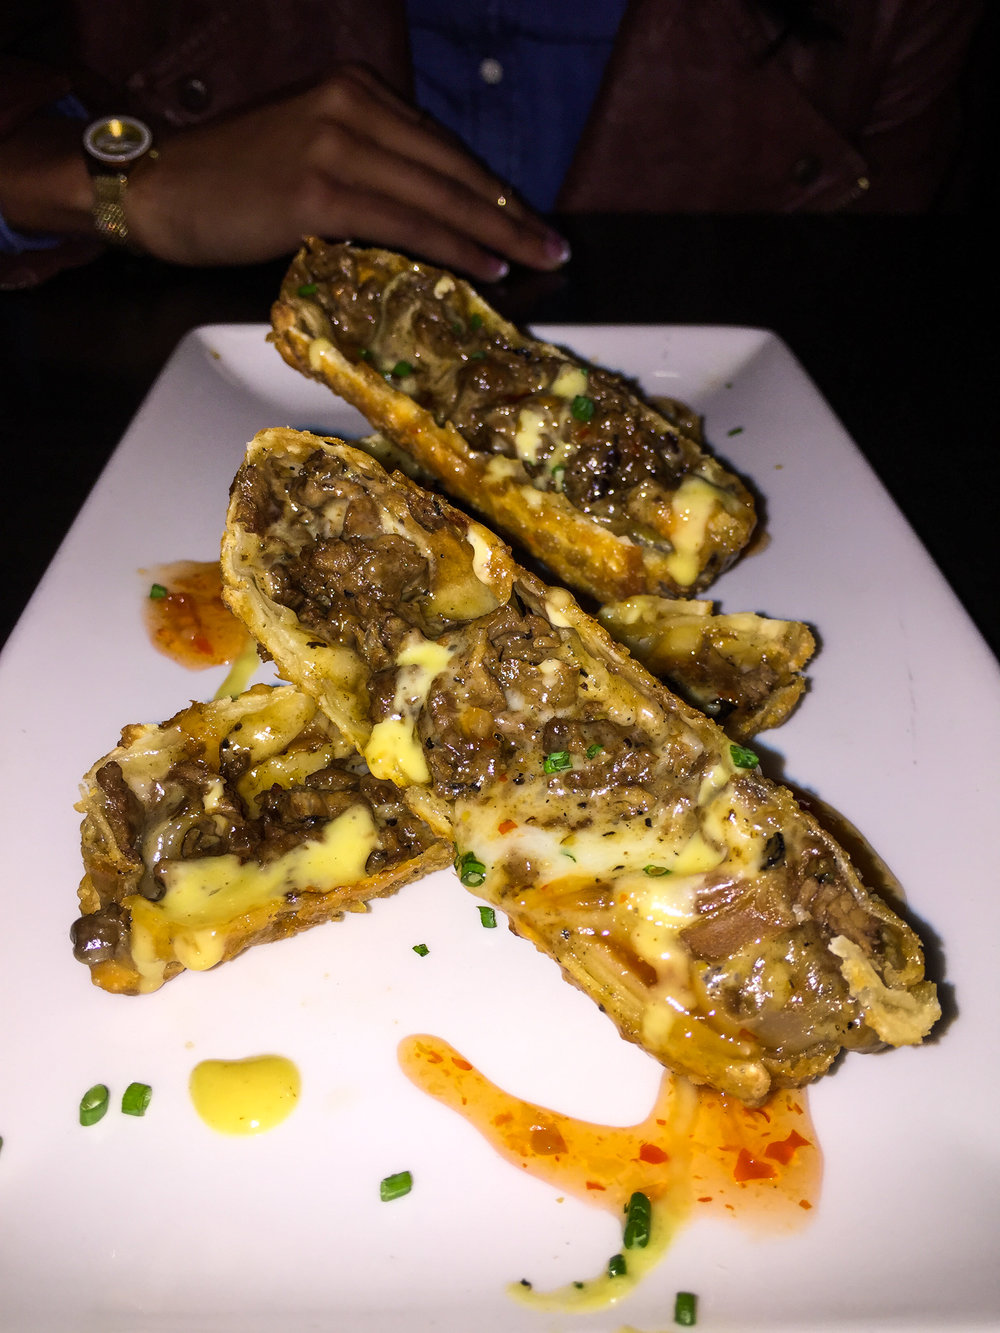 Cheesesteak Eggrolls from Del Frisco's - Sweet & Spicy Chili Sauce, Honey Mustard.$12.50